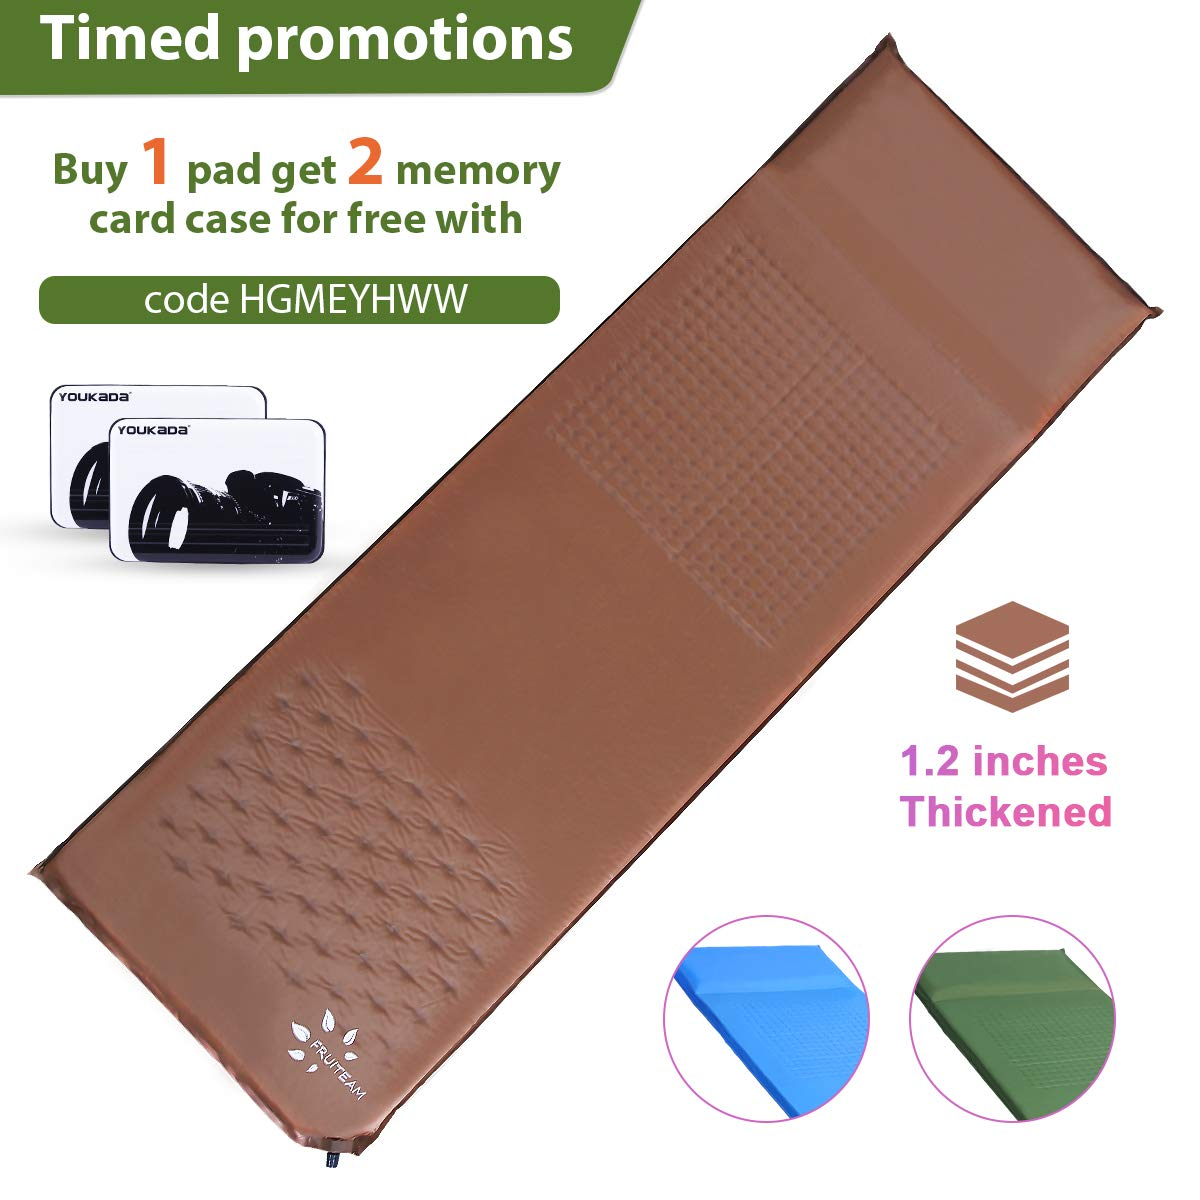 FRUITEAM Sleeping pad with Pillow self Inflating Camping pad Lightweight Foam pad Large Backpacking air Mattress by FRUITEAM